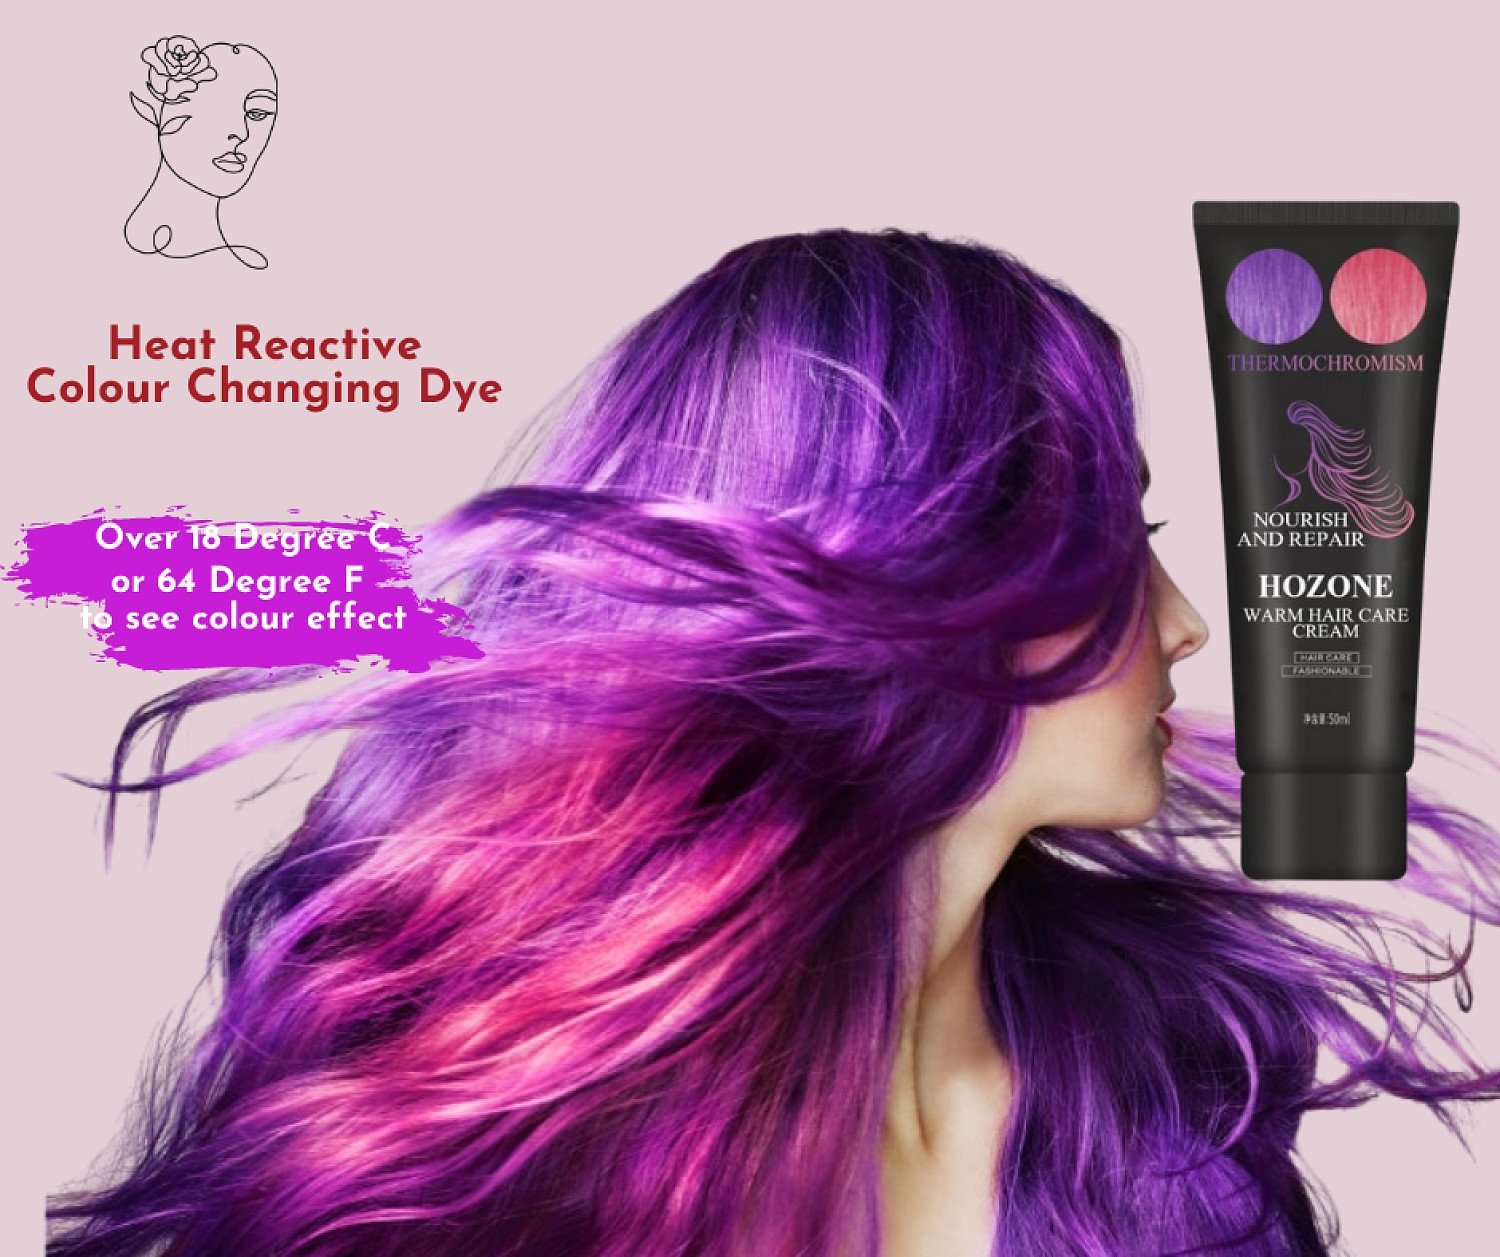 Heat Reactive Colour Changing Hair Dye